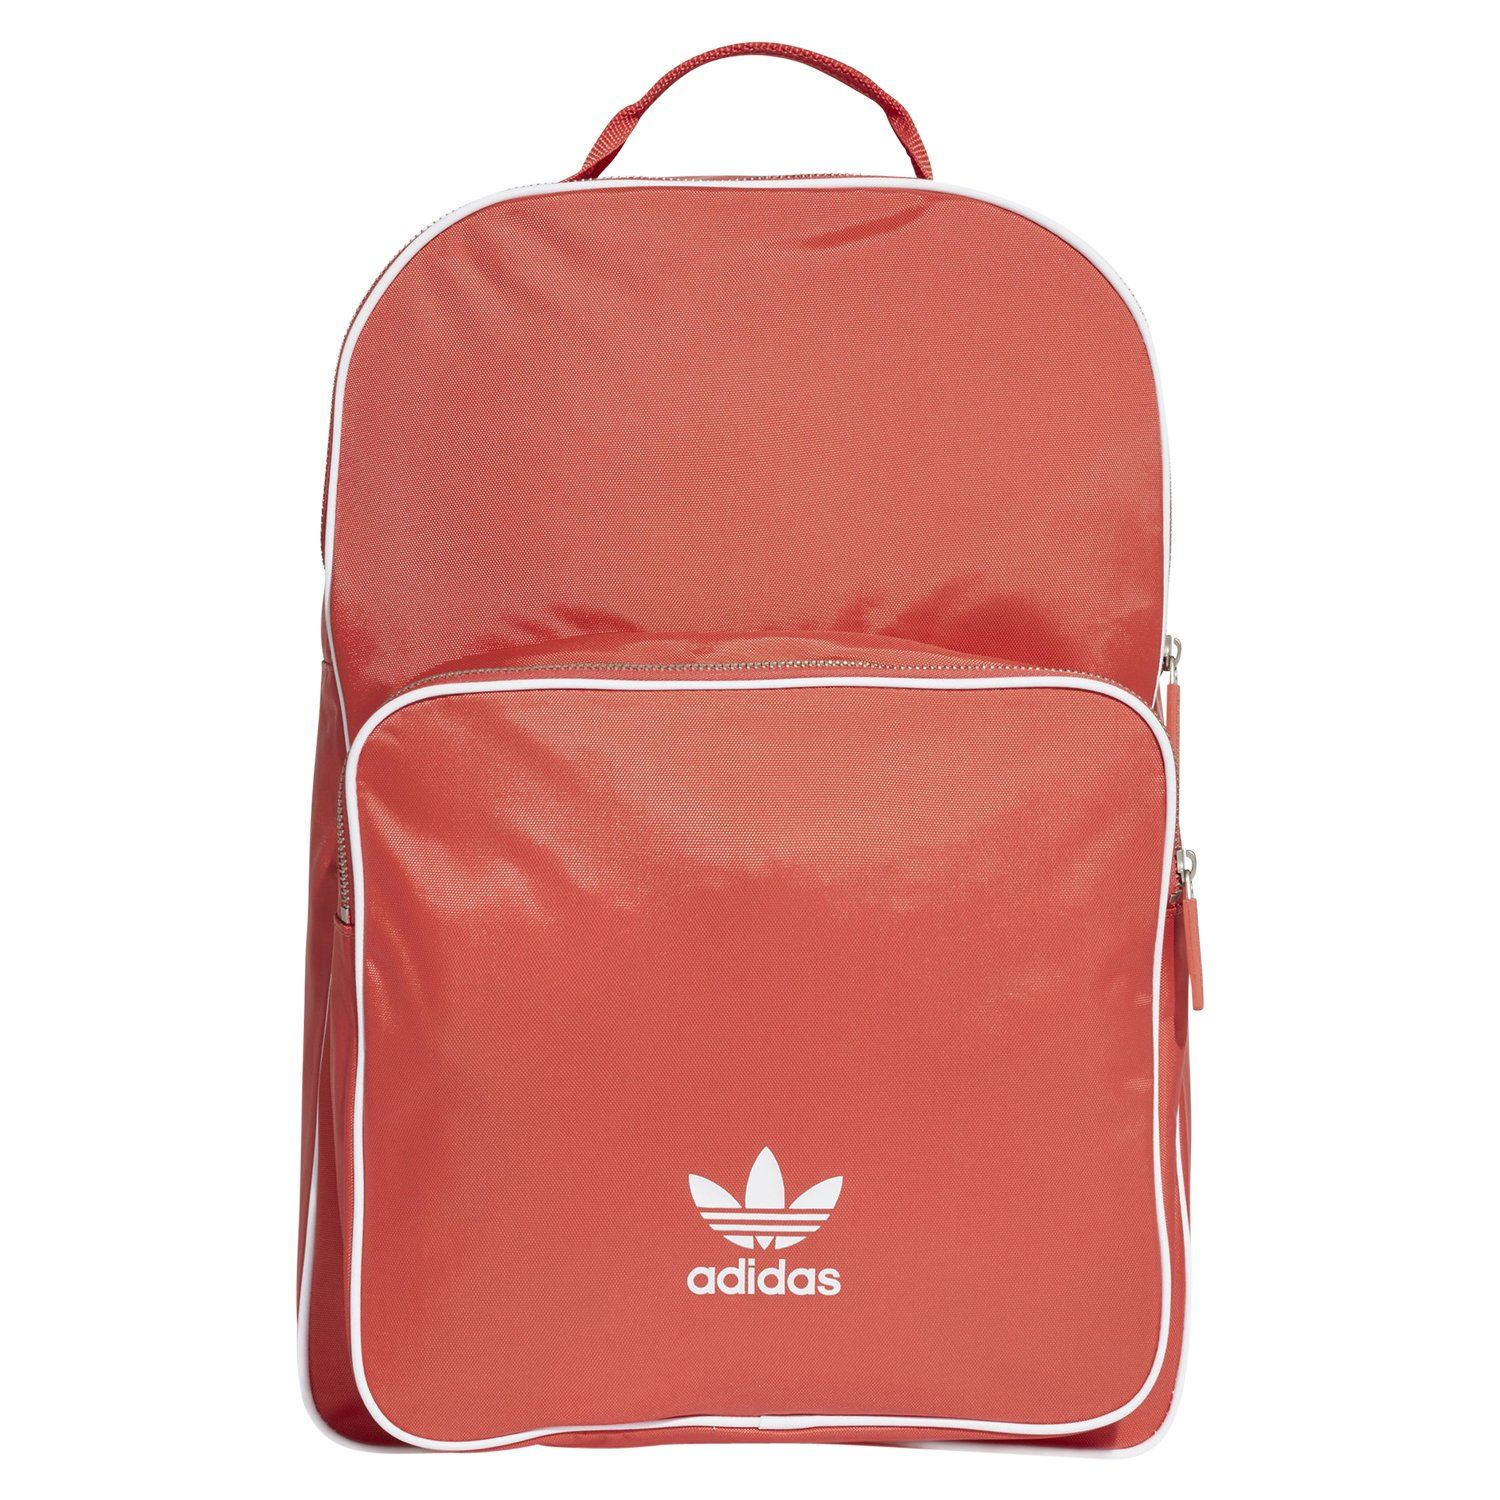 007374a11d99 Details about adidas ORIGINALS UNISEX ADICOLOR BACKPACK RUCKSACK RED RETRO  VINTAGE NEW BNWT